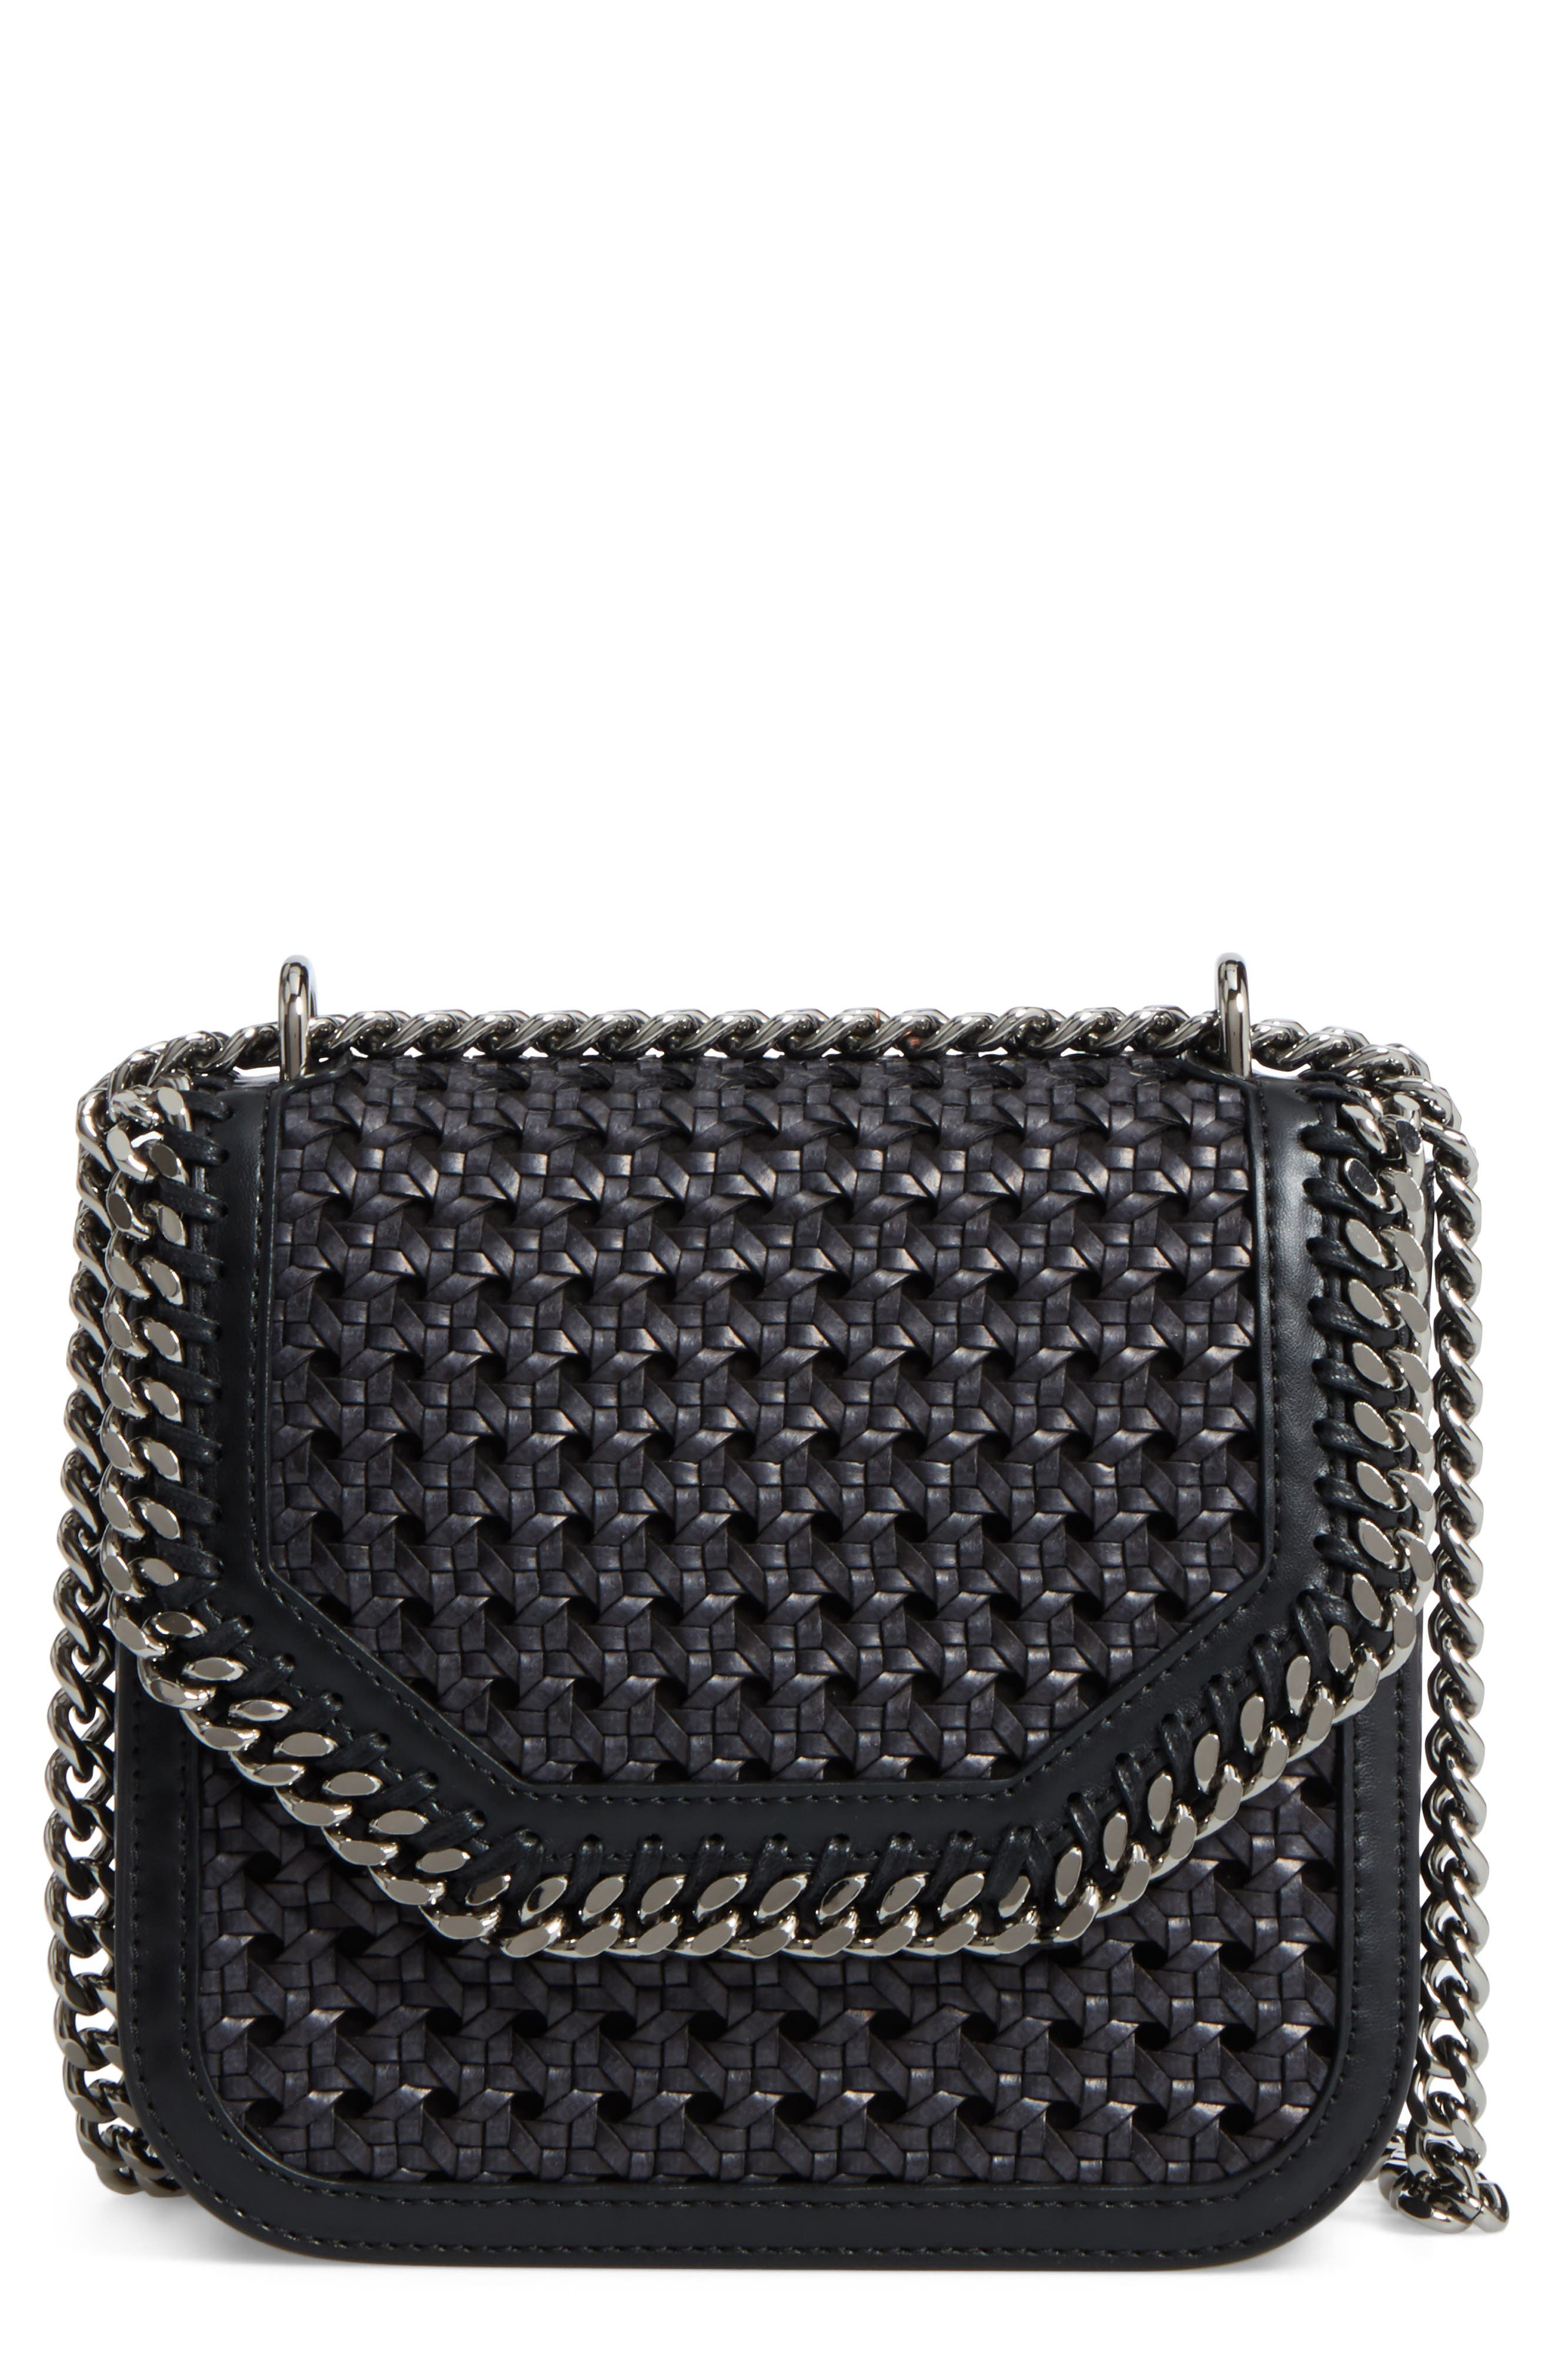 Main Image - Stella McCartney Falabella Box Woven Faux Leather Shoulder Bag